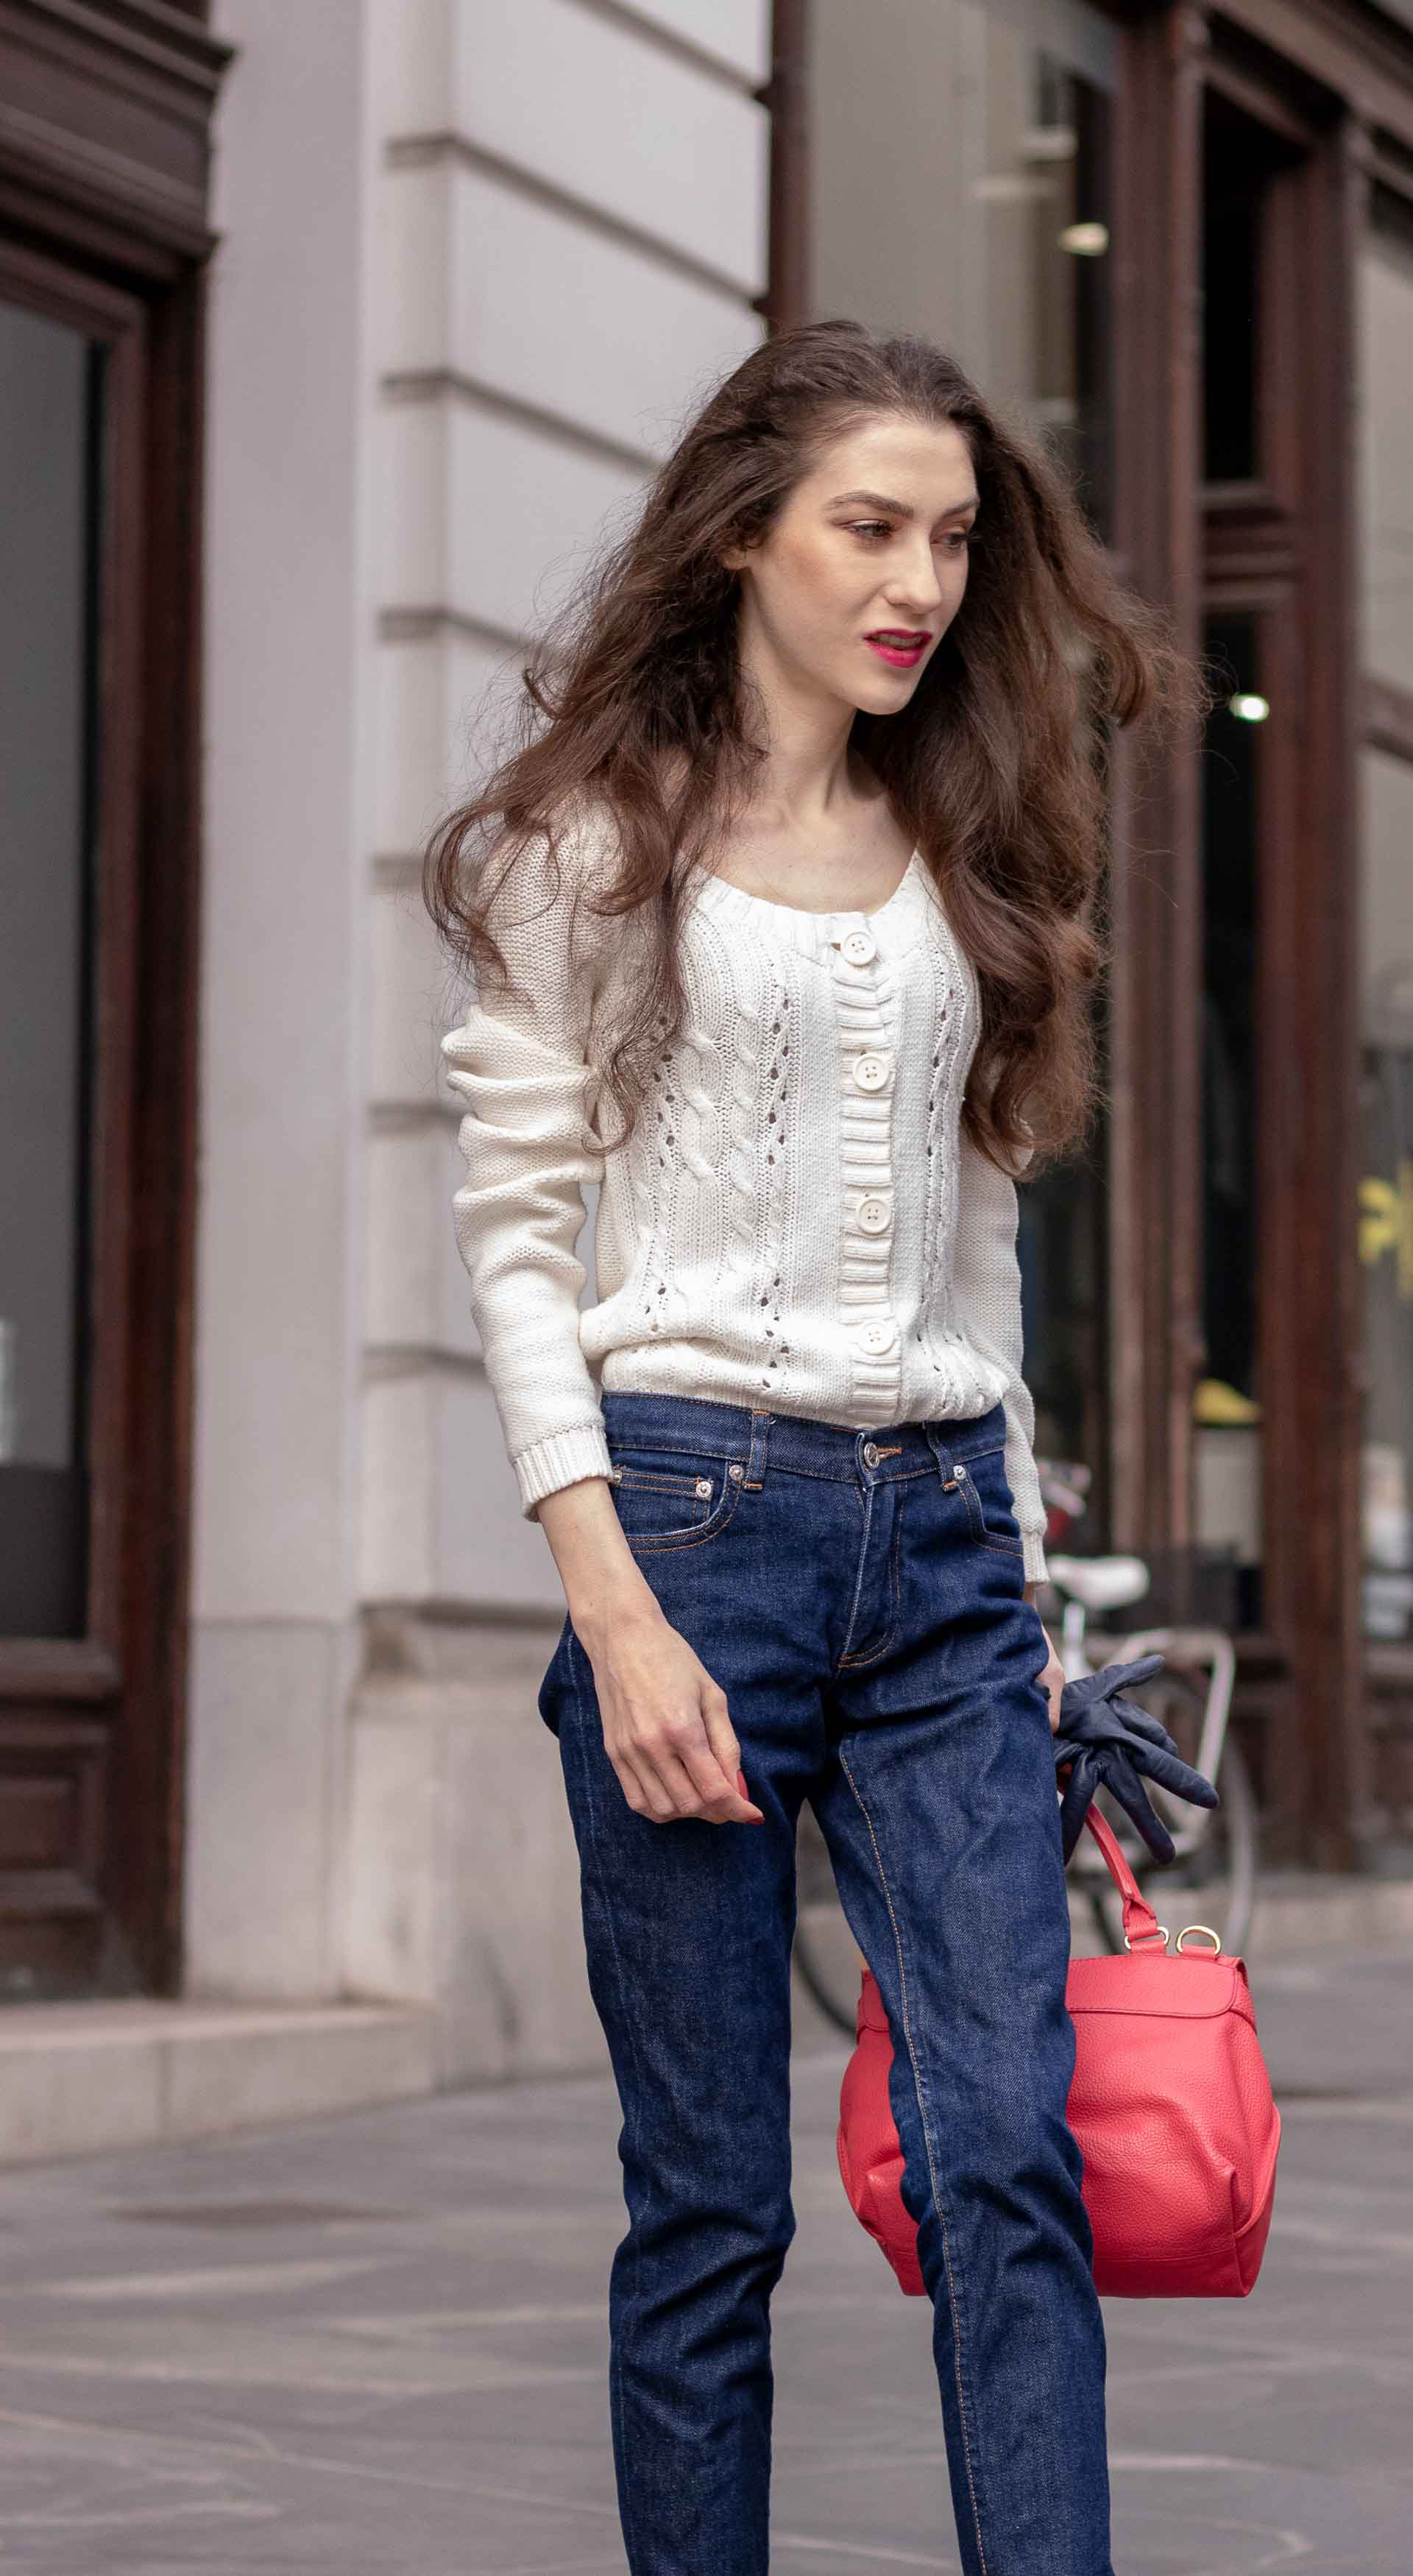 Beautiful Slovenian Fashion Blogger Veronika Lipar of Brunette from Wall wearing white Mango cardigan tucked into dark blue denim jeans from a.p.c., blue Gianvito Rossi pumps, pink top handle bag in autumn